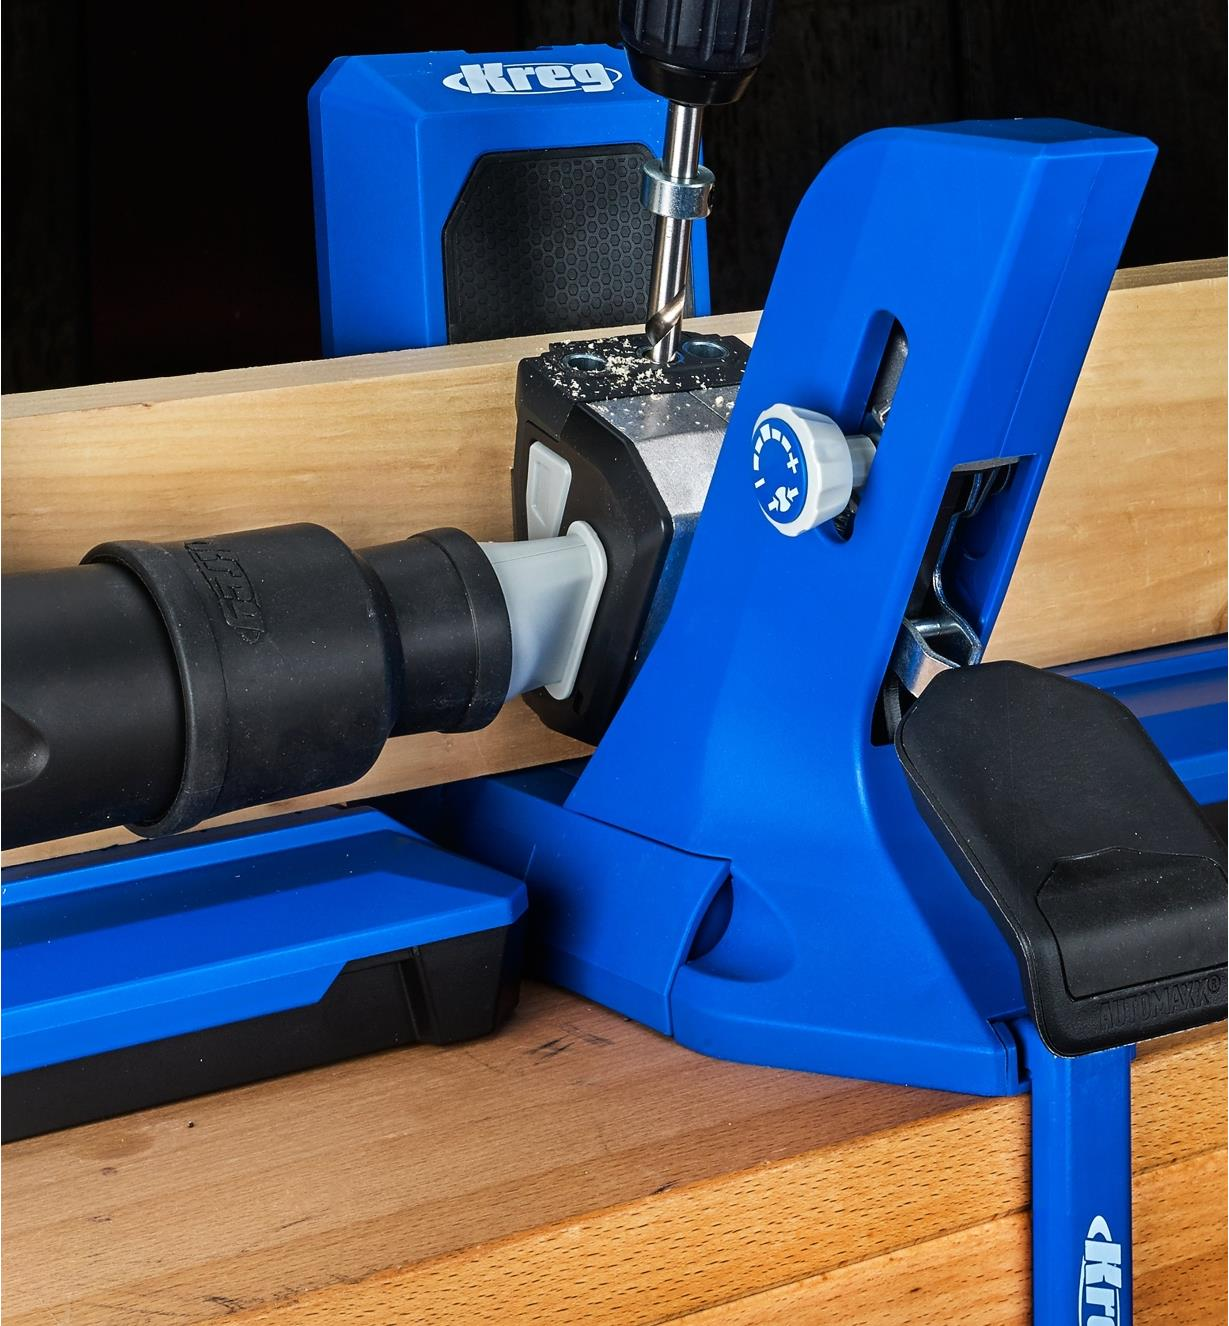 A close view of a Kreg 720 Pro jig connected to a vacuum hose for debris clearance